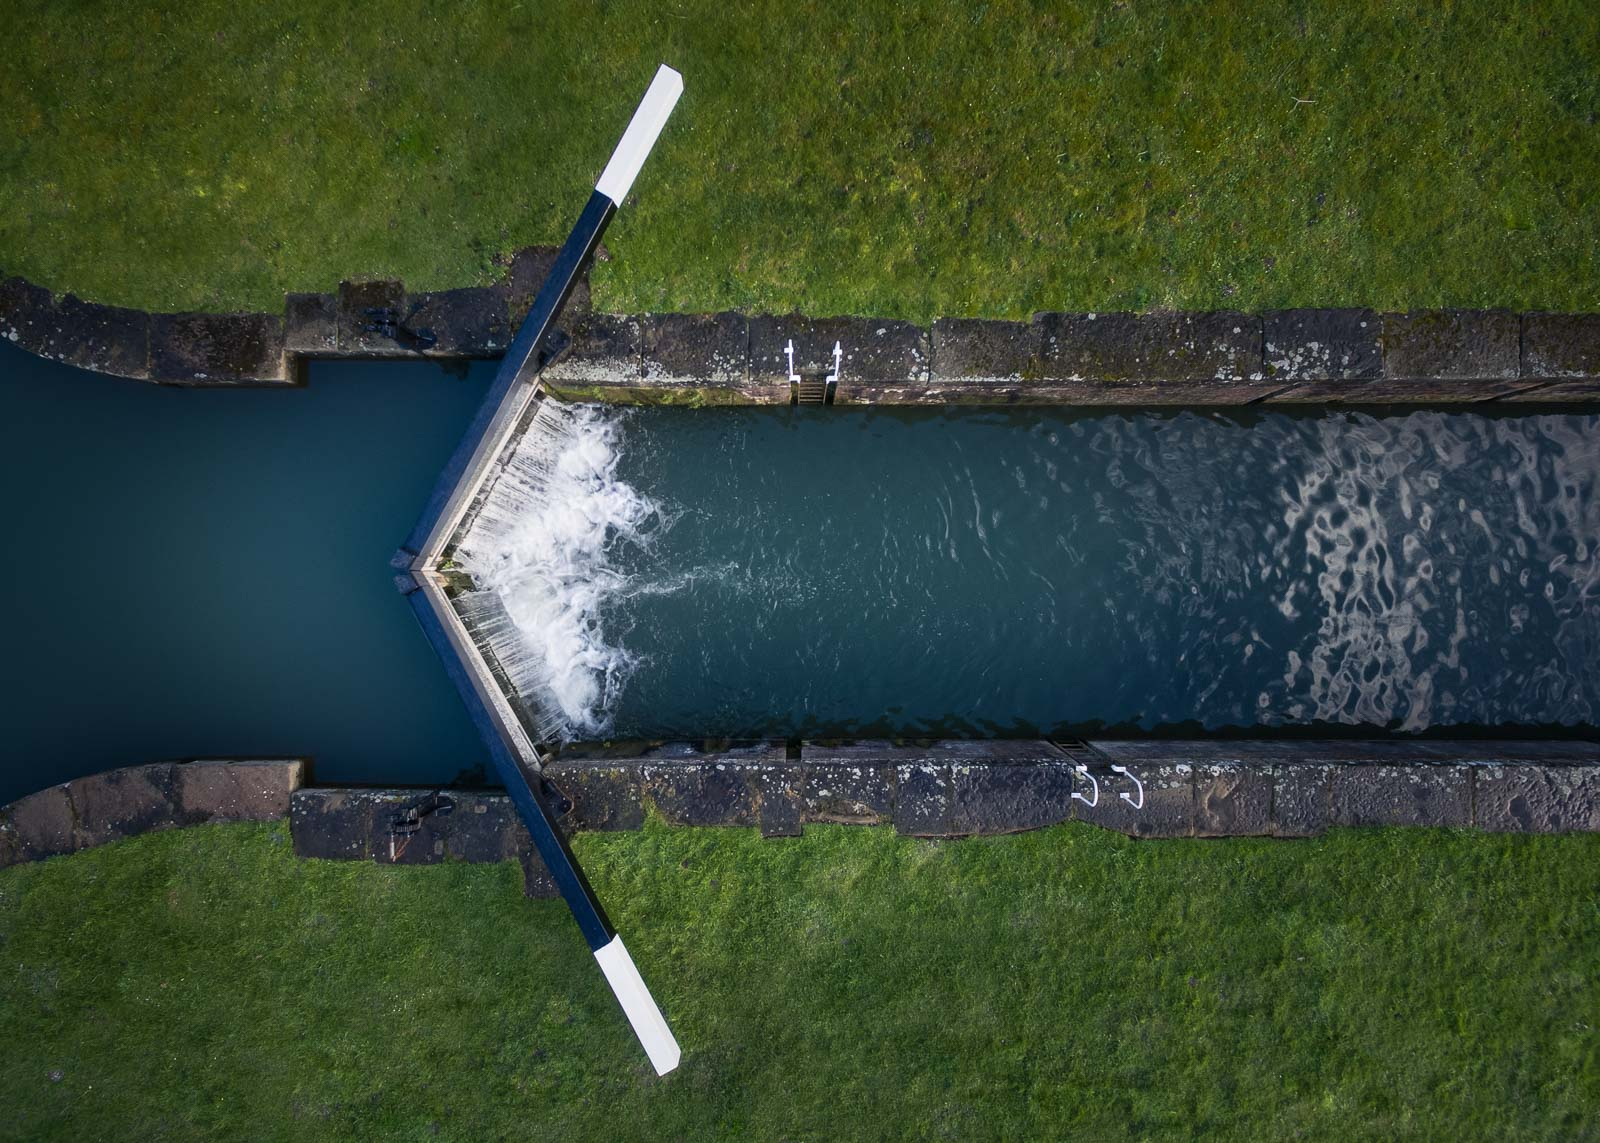 drone photography tips david copley